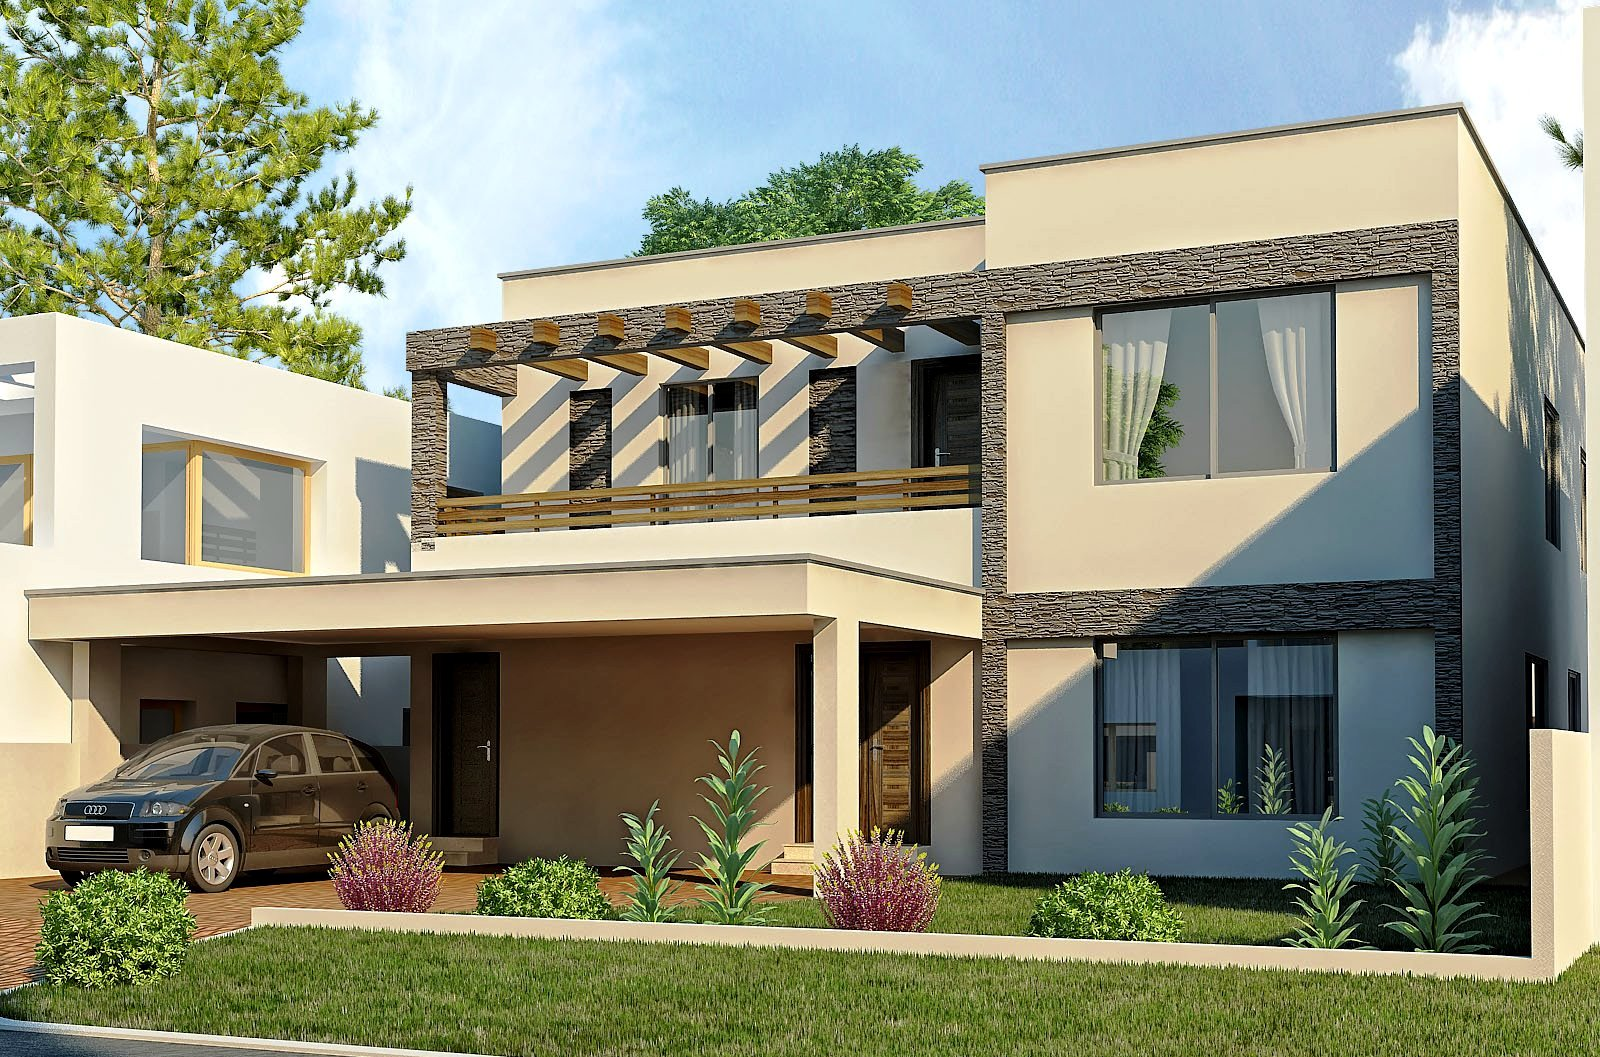 New home designs latest modern homes exterior designs views for New latest home design